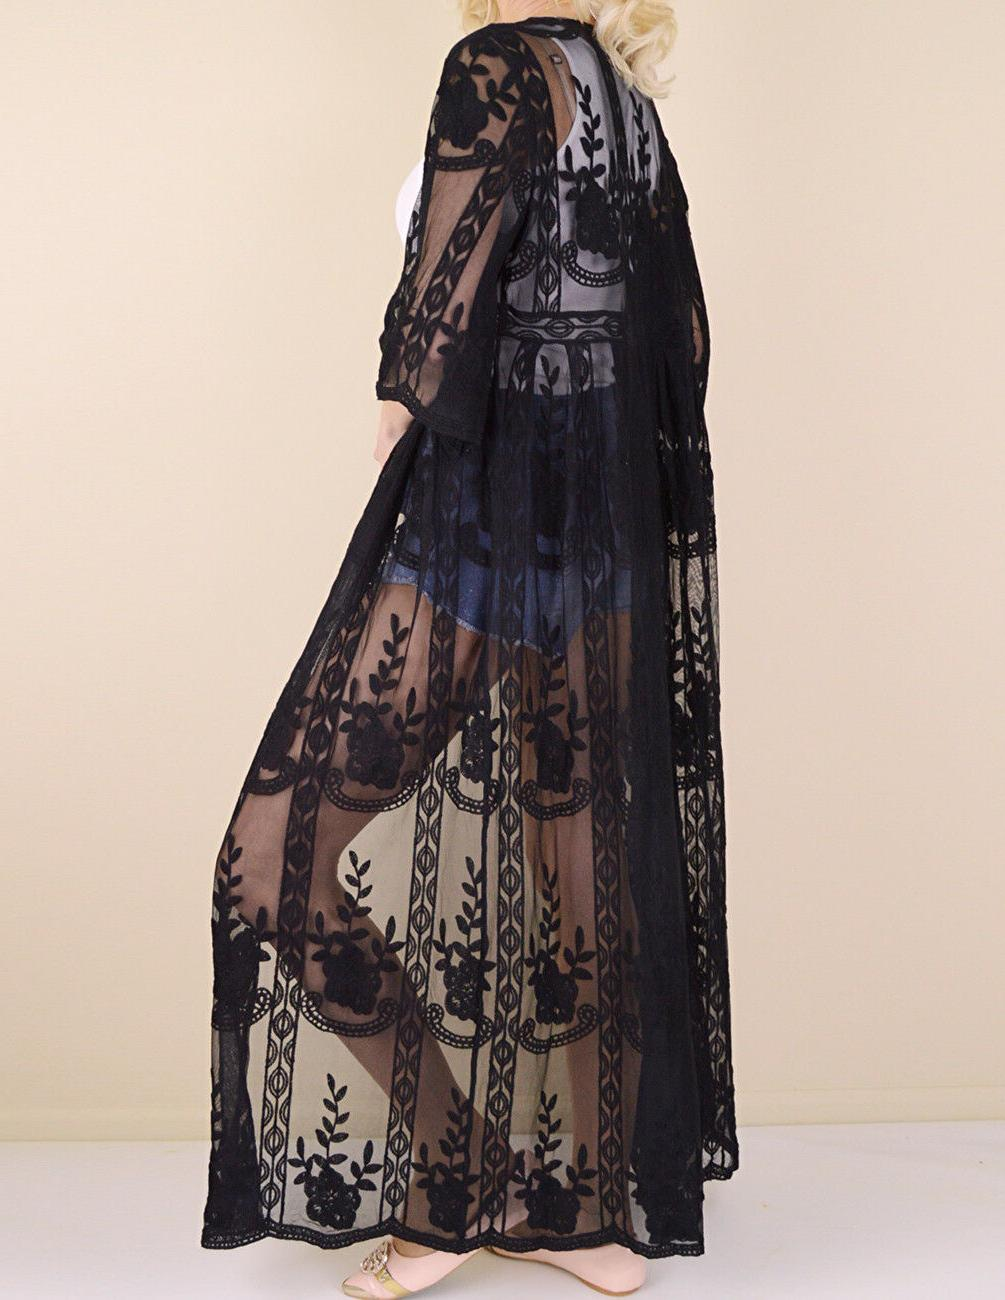 Women's Embroidered Sheer Lace Kimono Sleeve Long Duster Cardigan Maxi